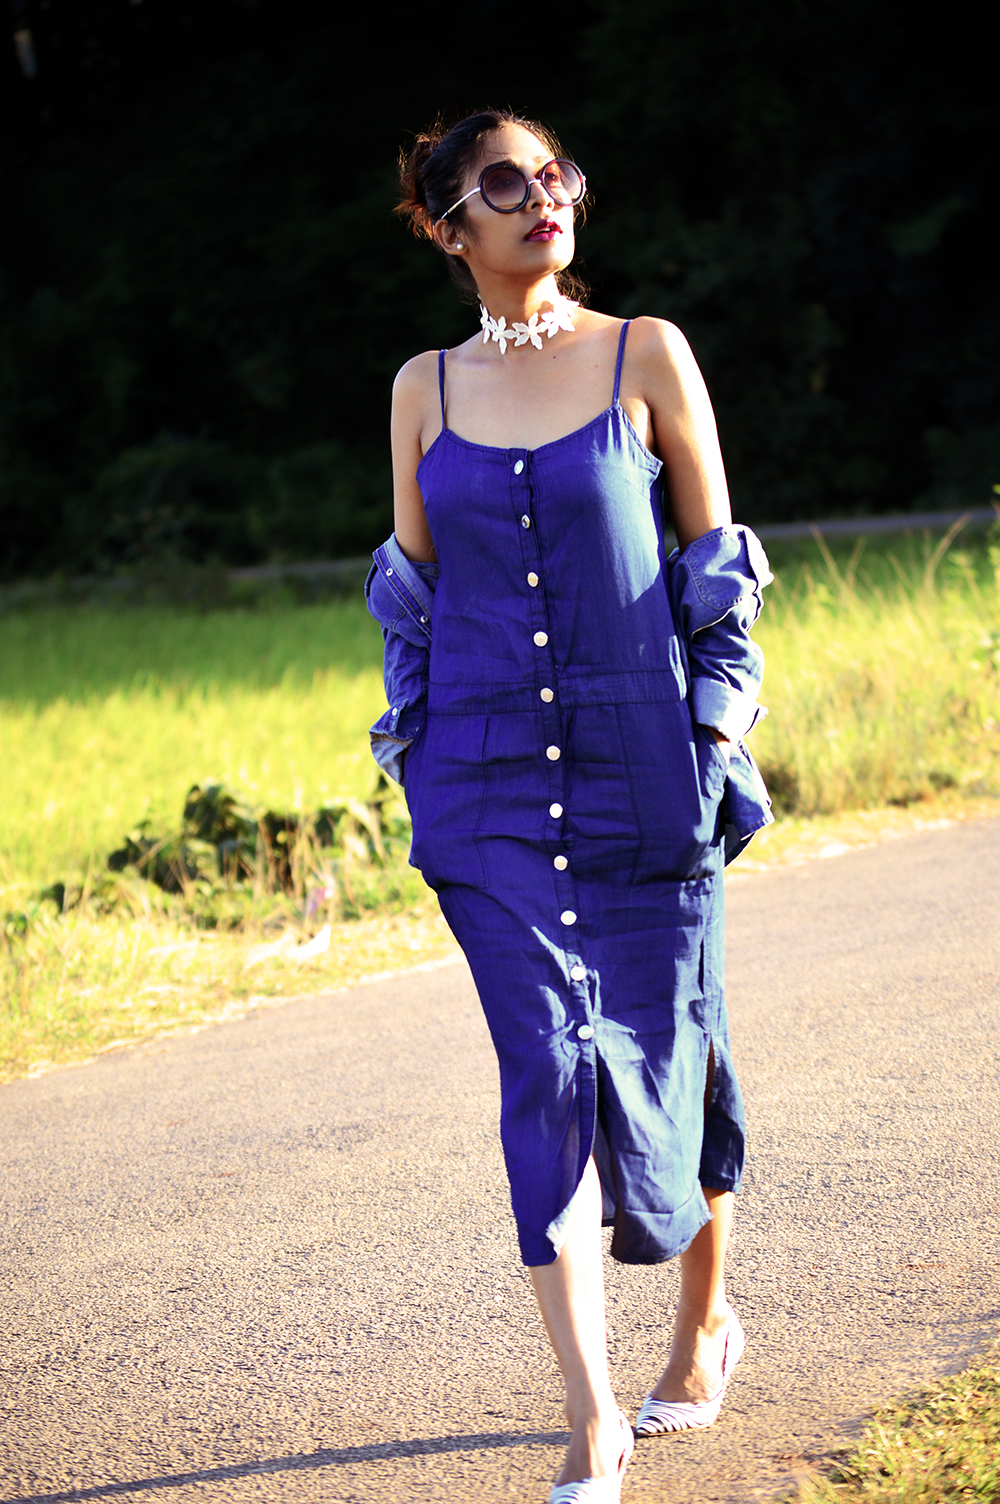 Fashion, Style, Indian Fashion Blogger, Denim Style, Denim Slip Dress, Denim Shirt, Fall Fashion, Street Style, Fashion Photography, top fashion-6